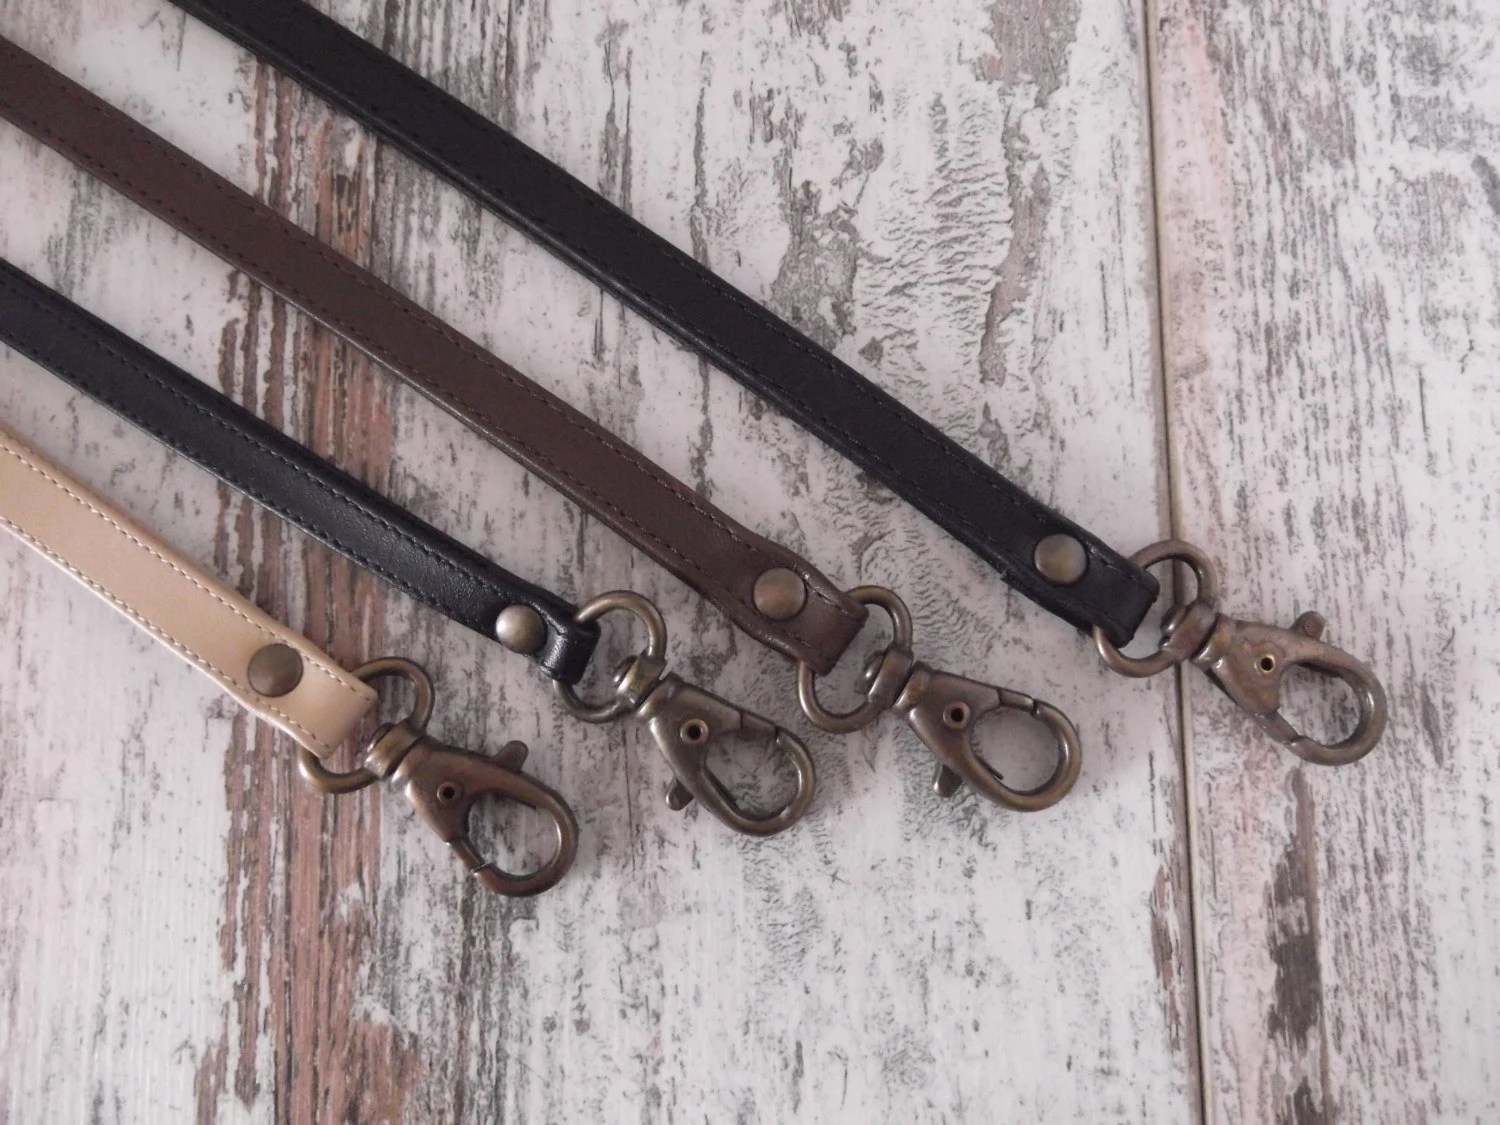 Leather Lanyard Leather Neck Strap Keychain Key Holder